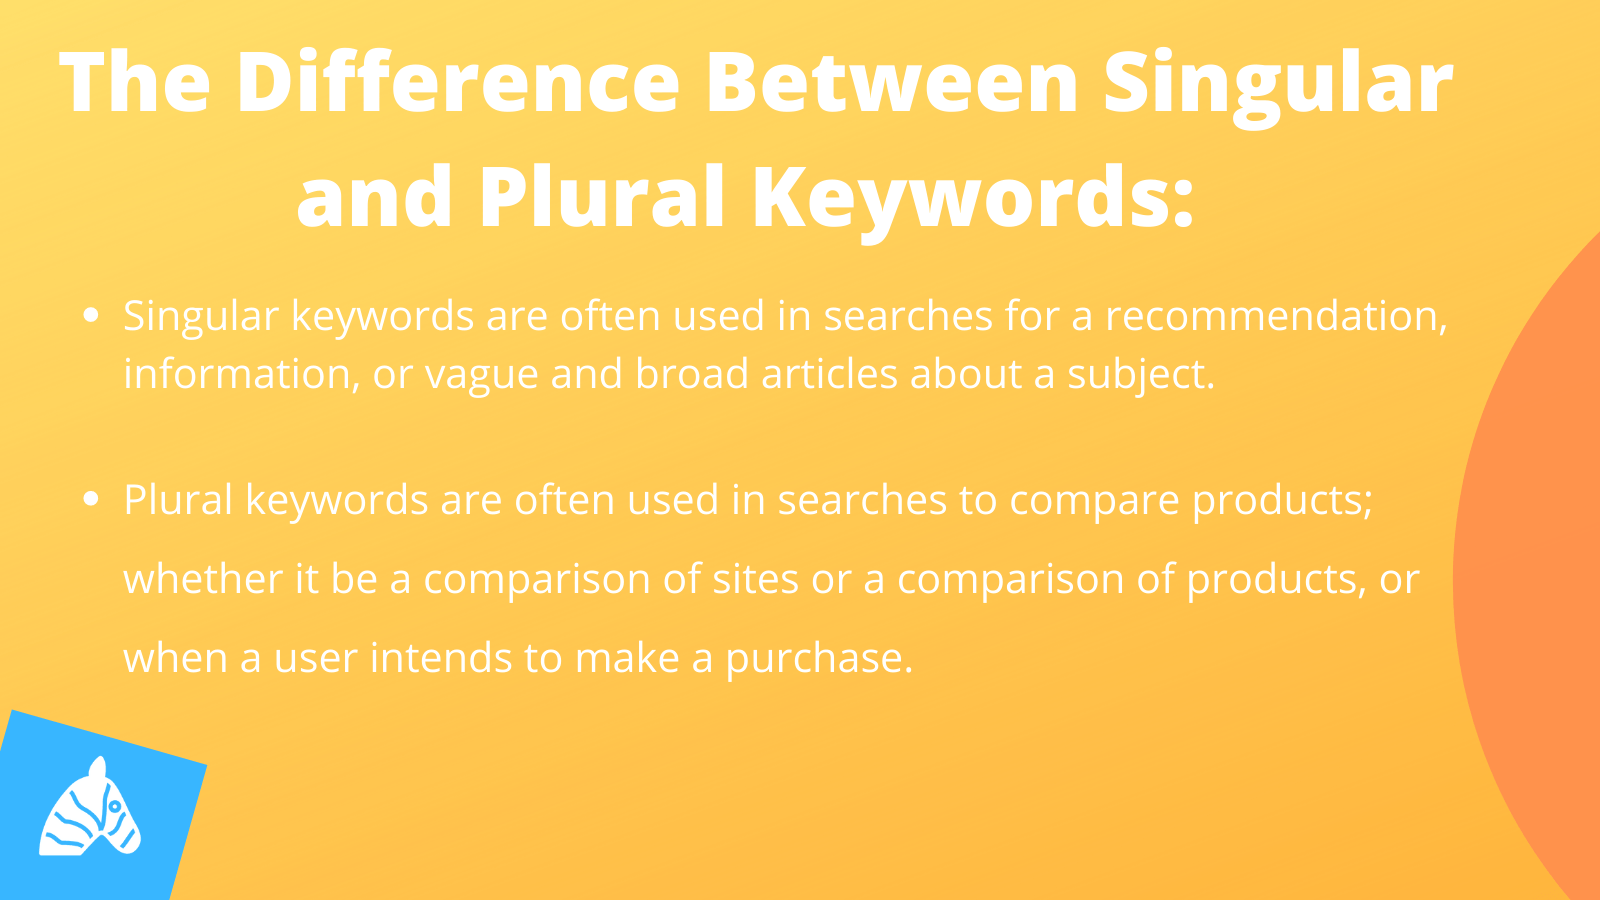 the difference between singular and plural keywords explained